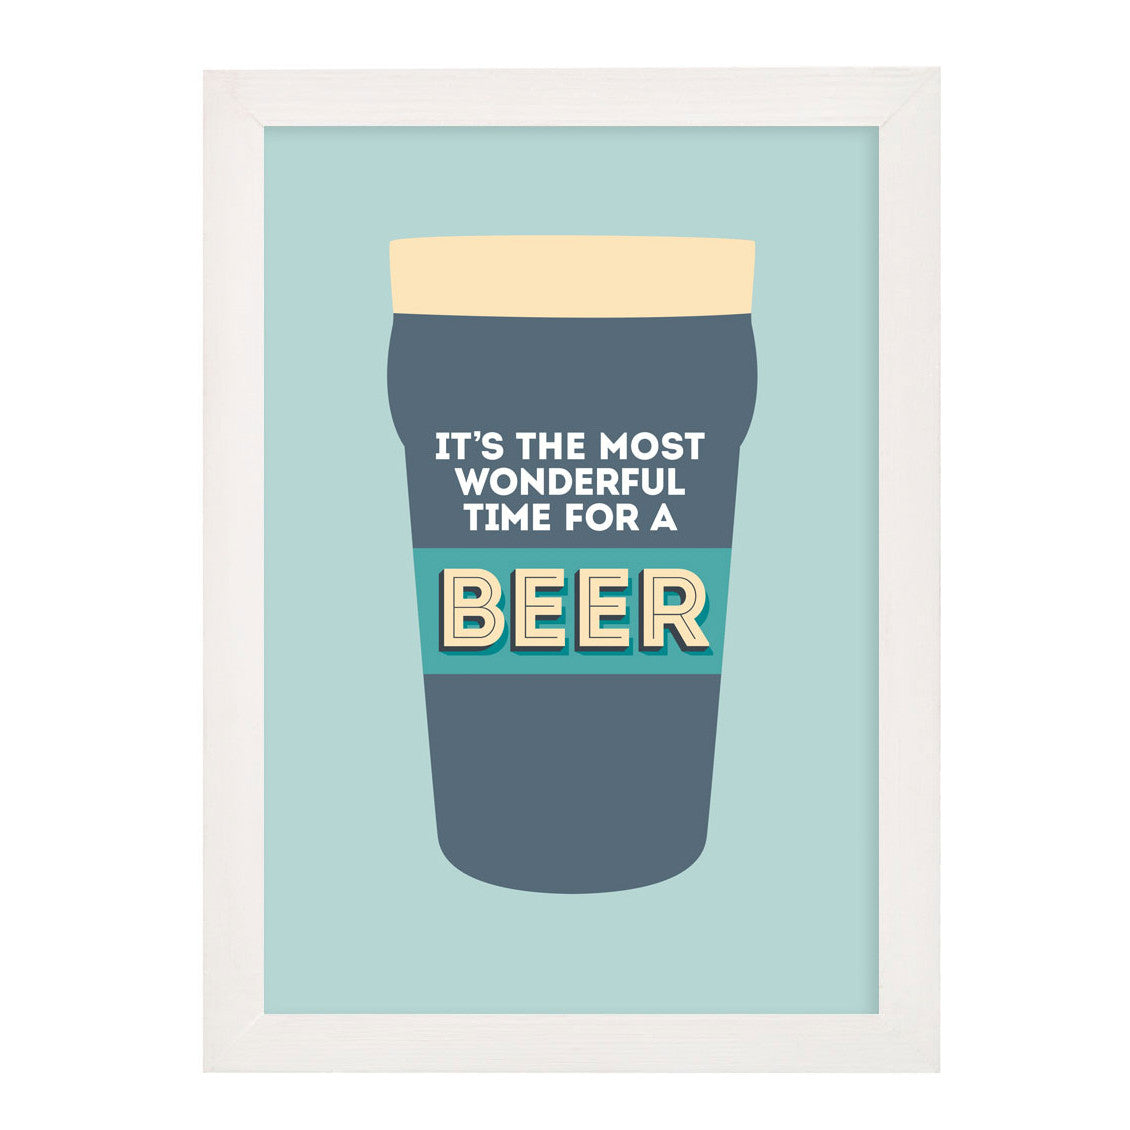 It's the Most wonderful time for a beer print